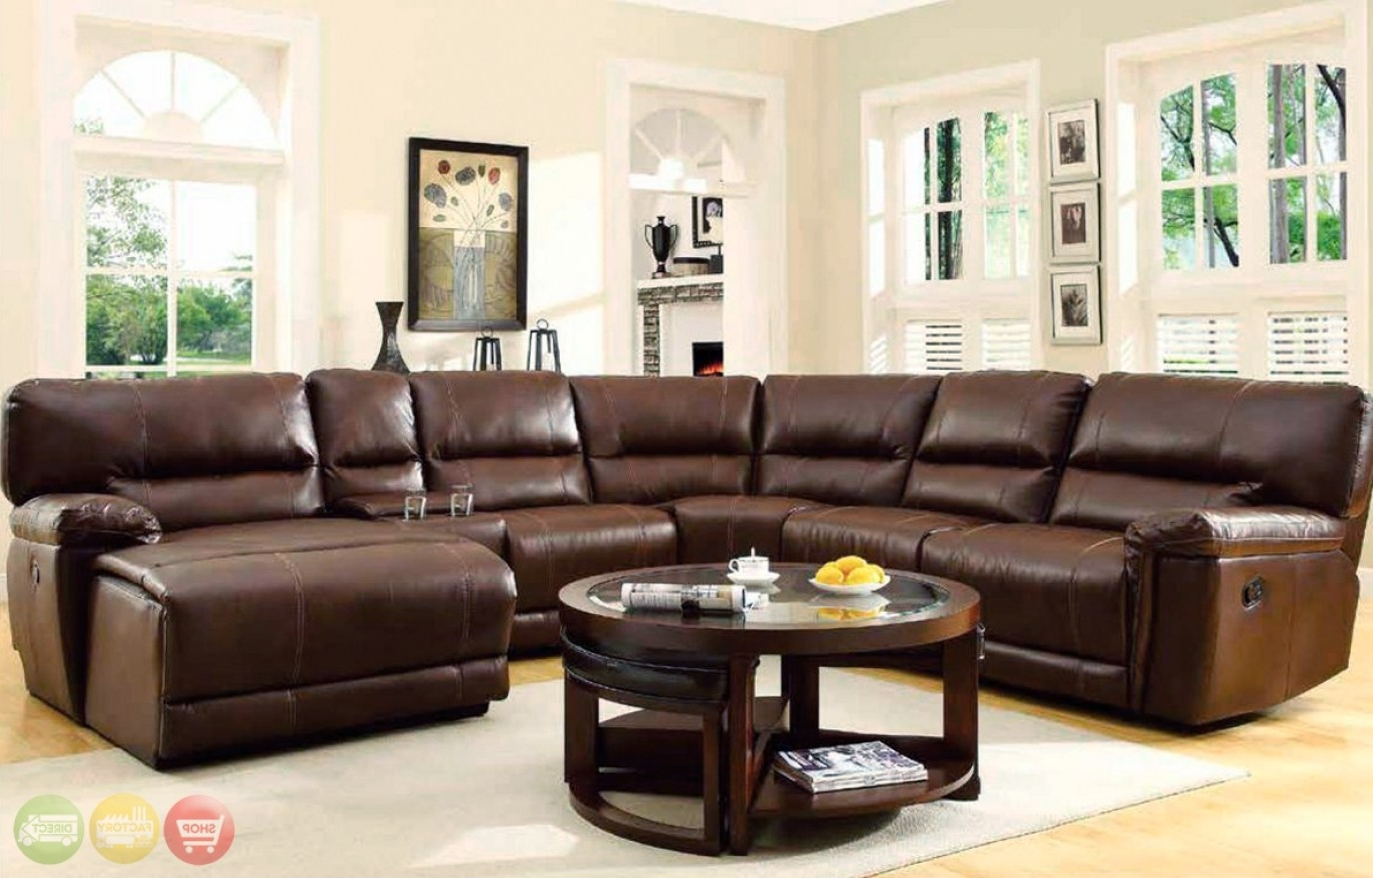 Trendy Recliner : Ideal Sectional Sofa With Recliner Leather Hypnotizing Within Sectional Sofas At Bangalore (View 17 of 20)